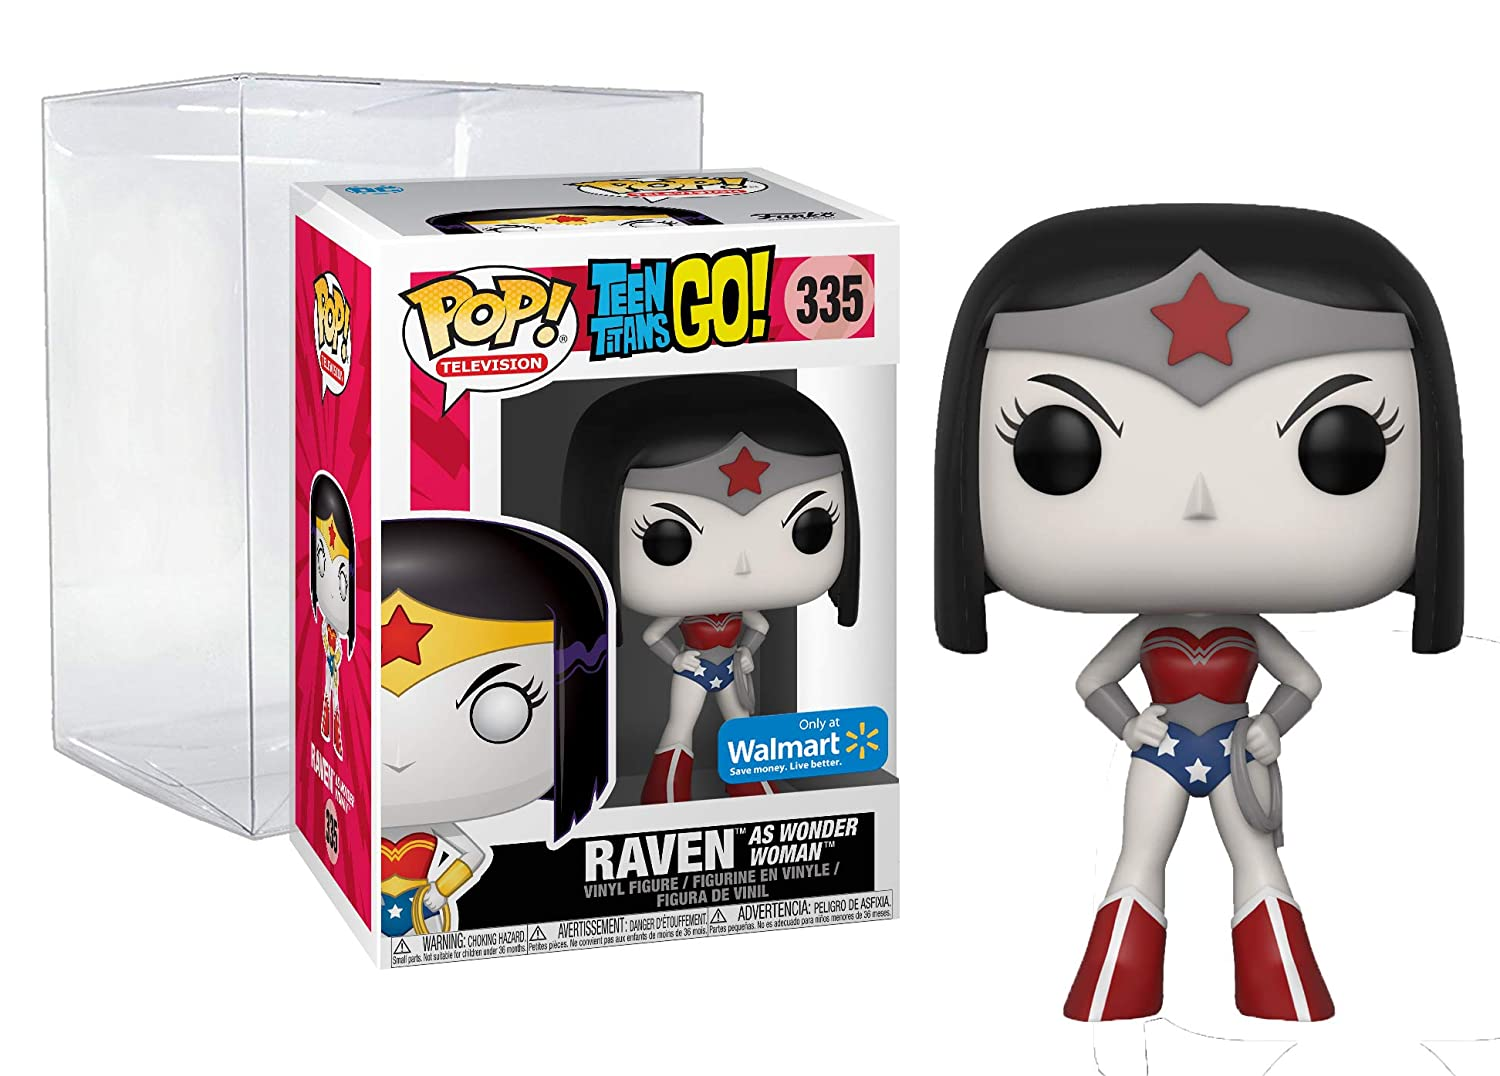 Bundle: Teen Titans Go Funko Pop #335, Walmart Exclusive with Protector FunkoLLC Raven as Wonder Woman